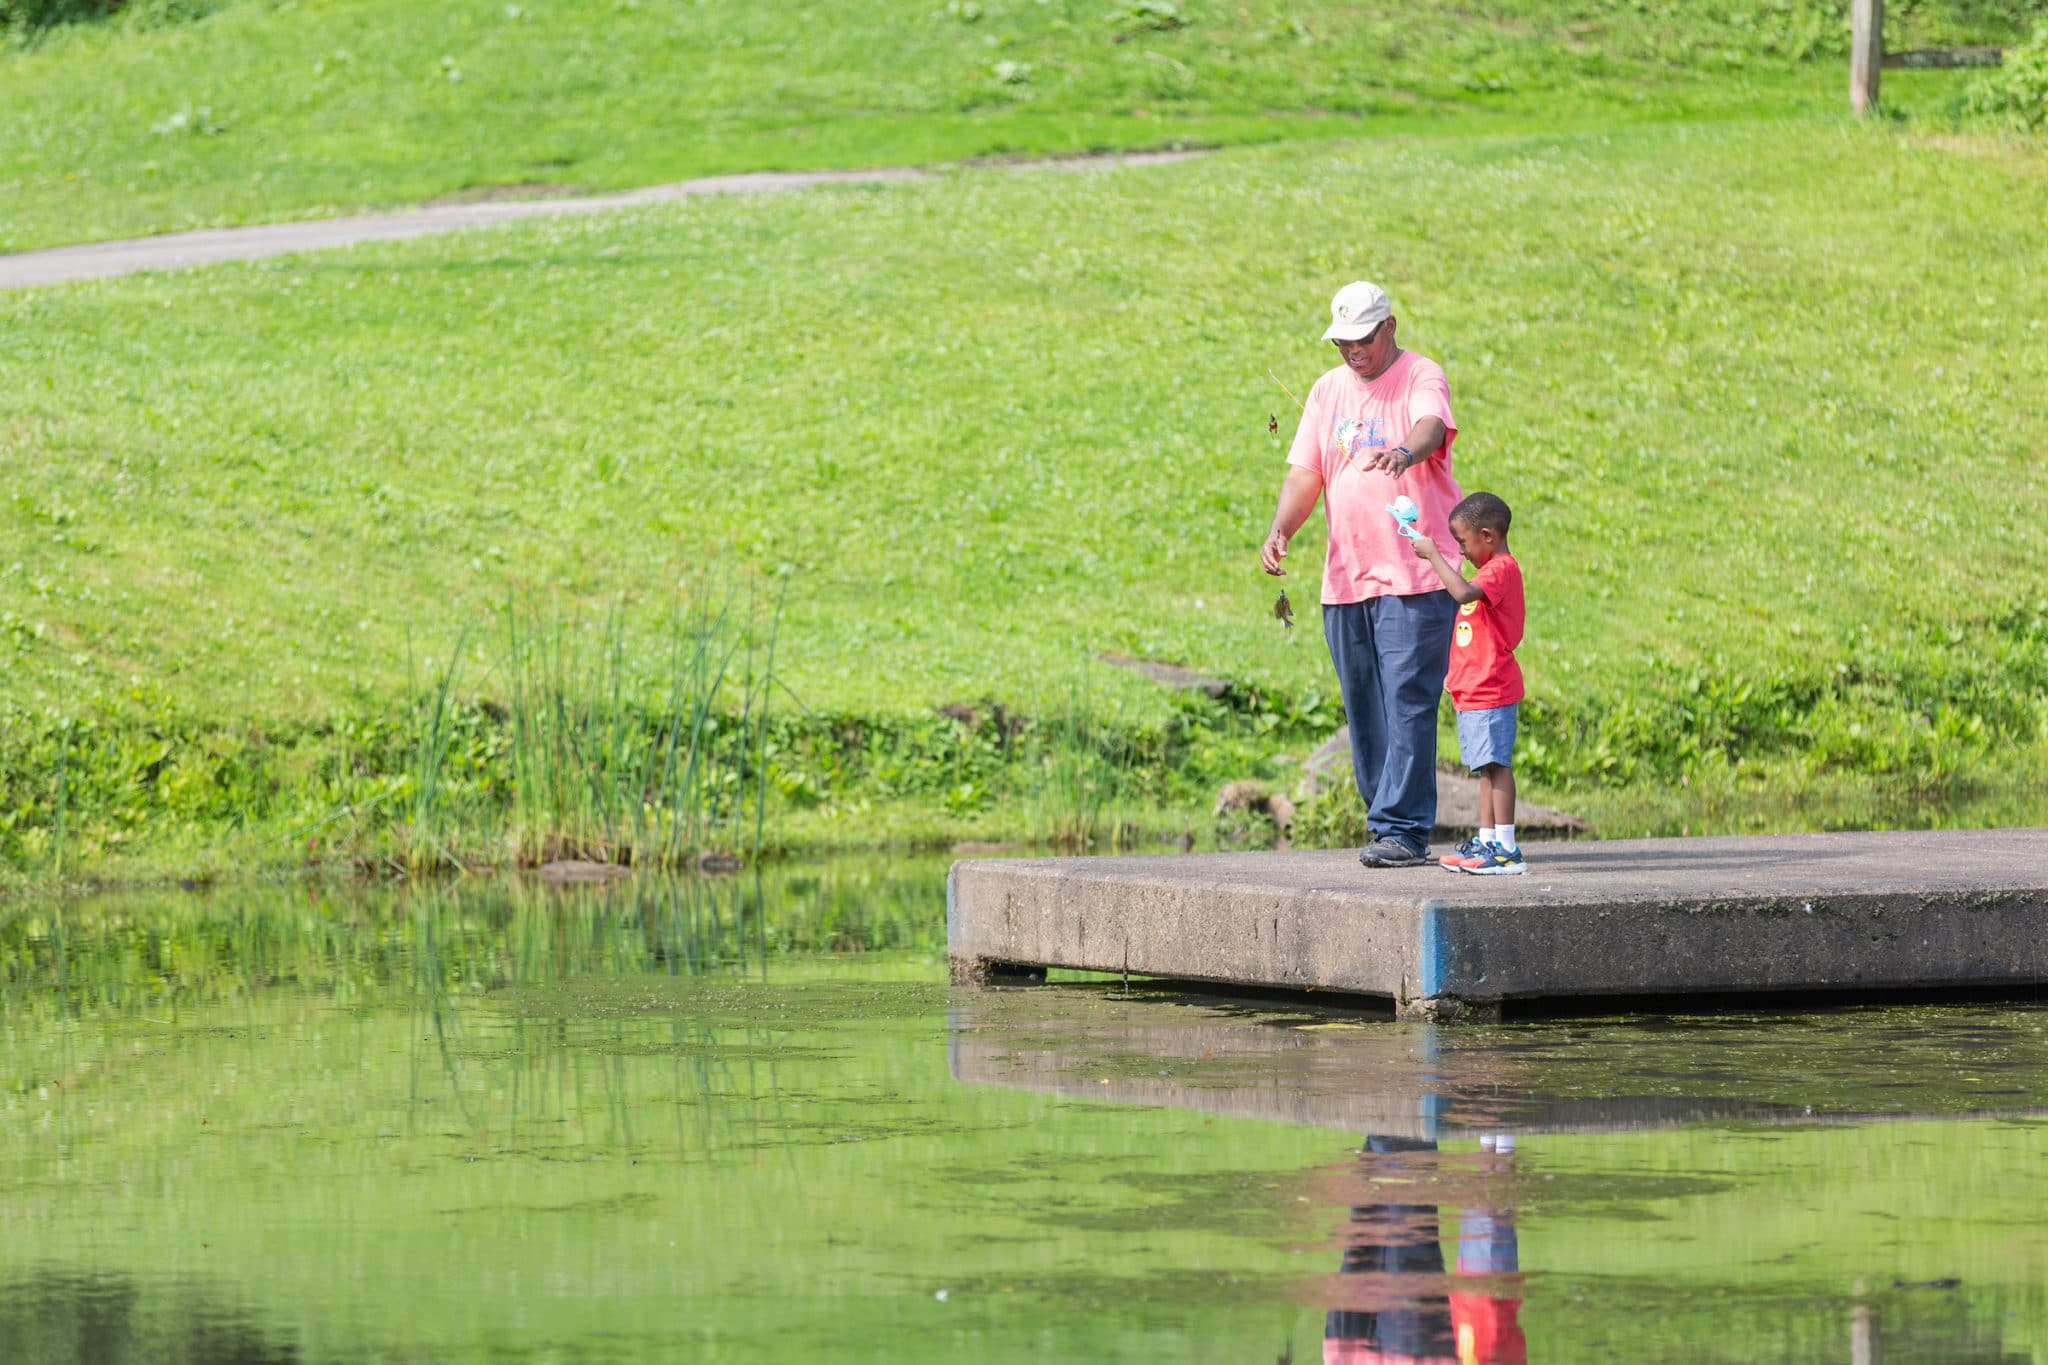 Adult and child fishing in a lake